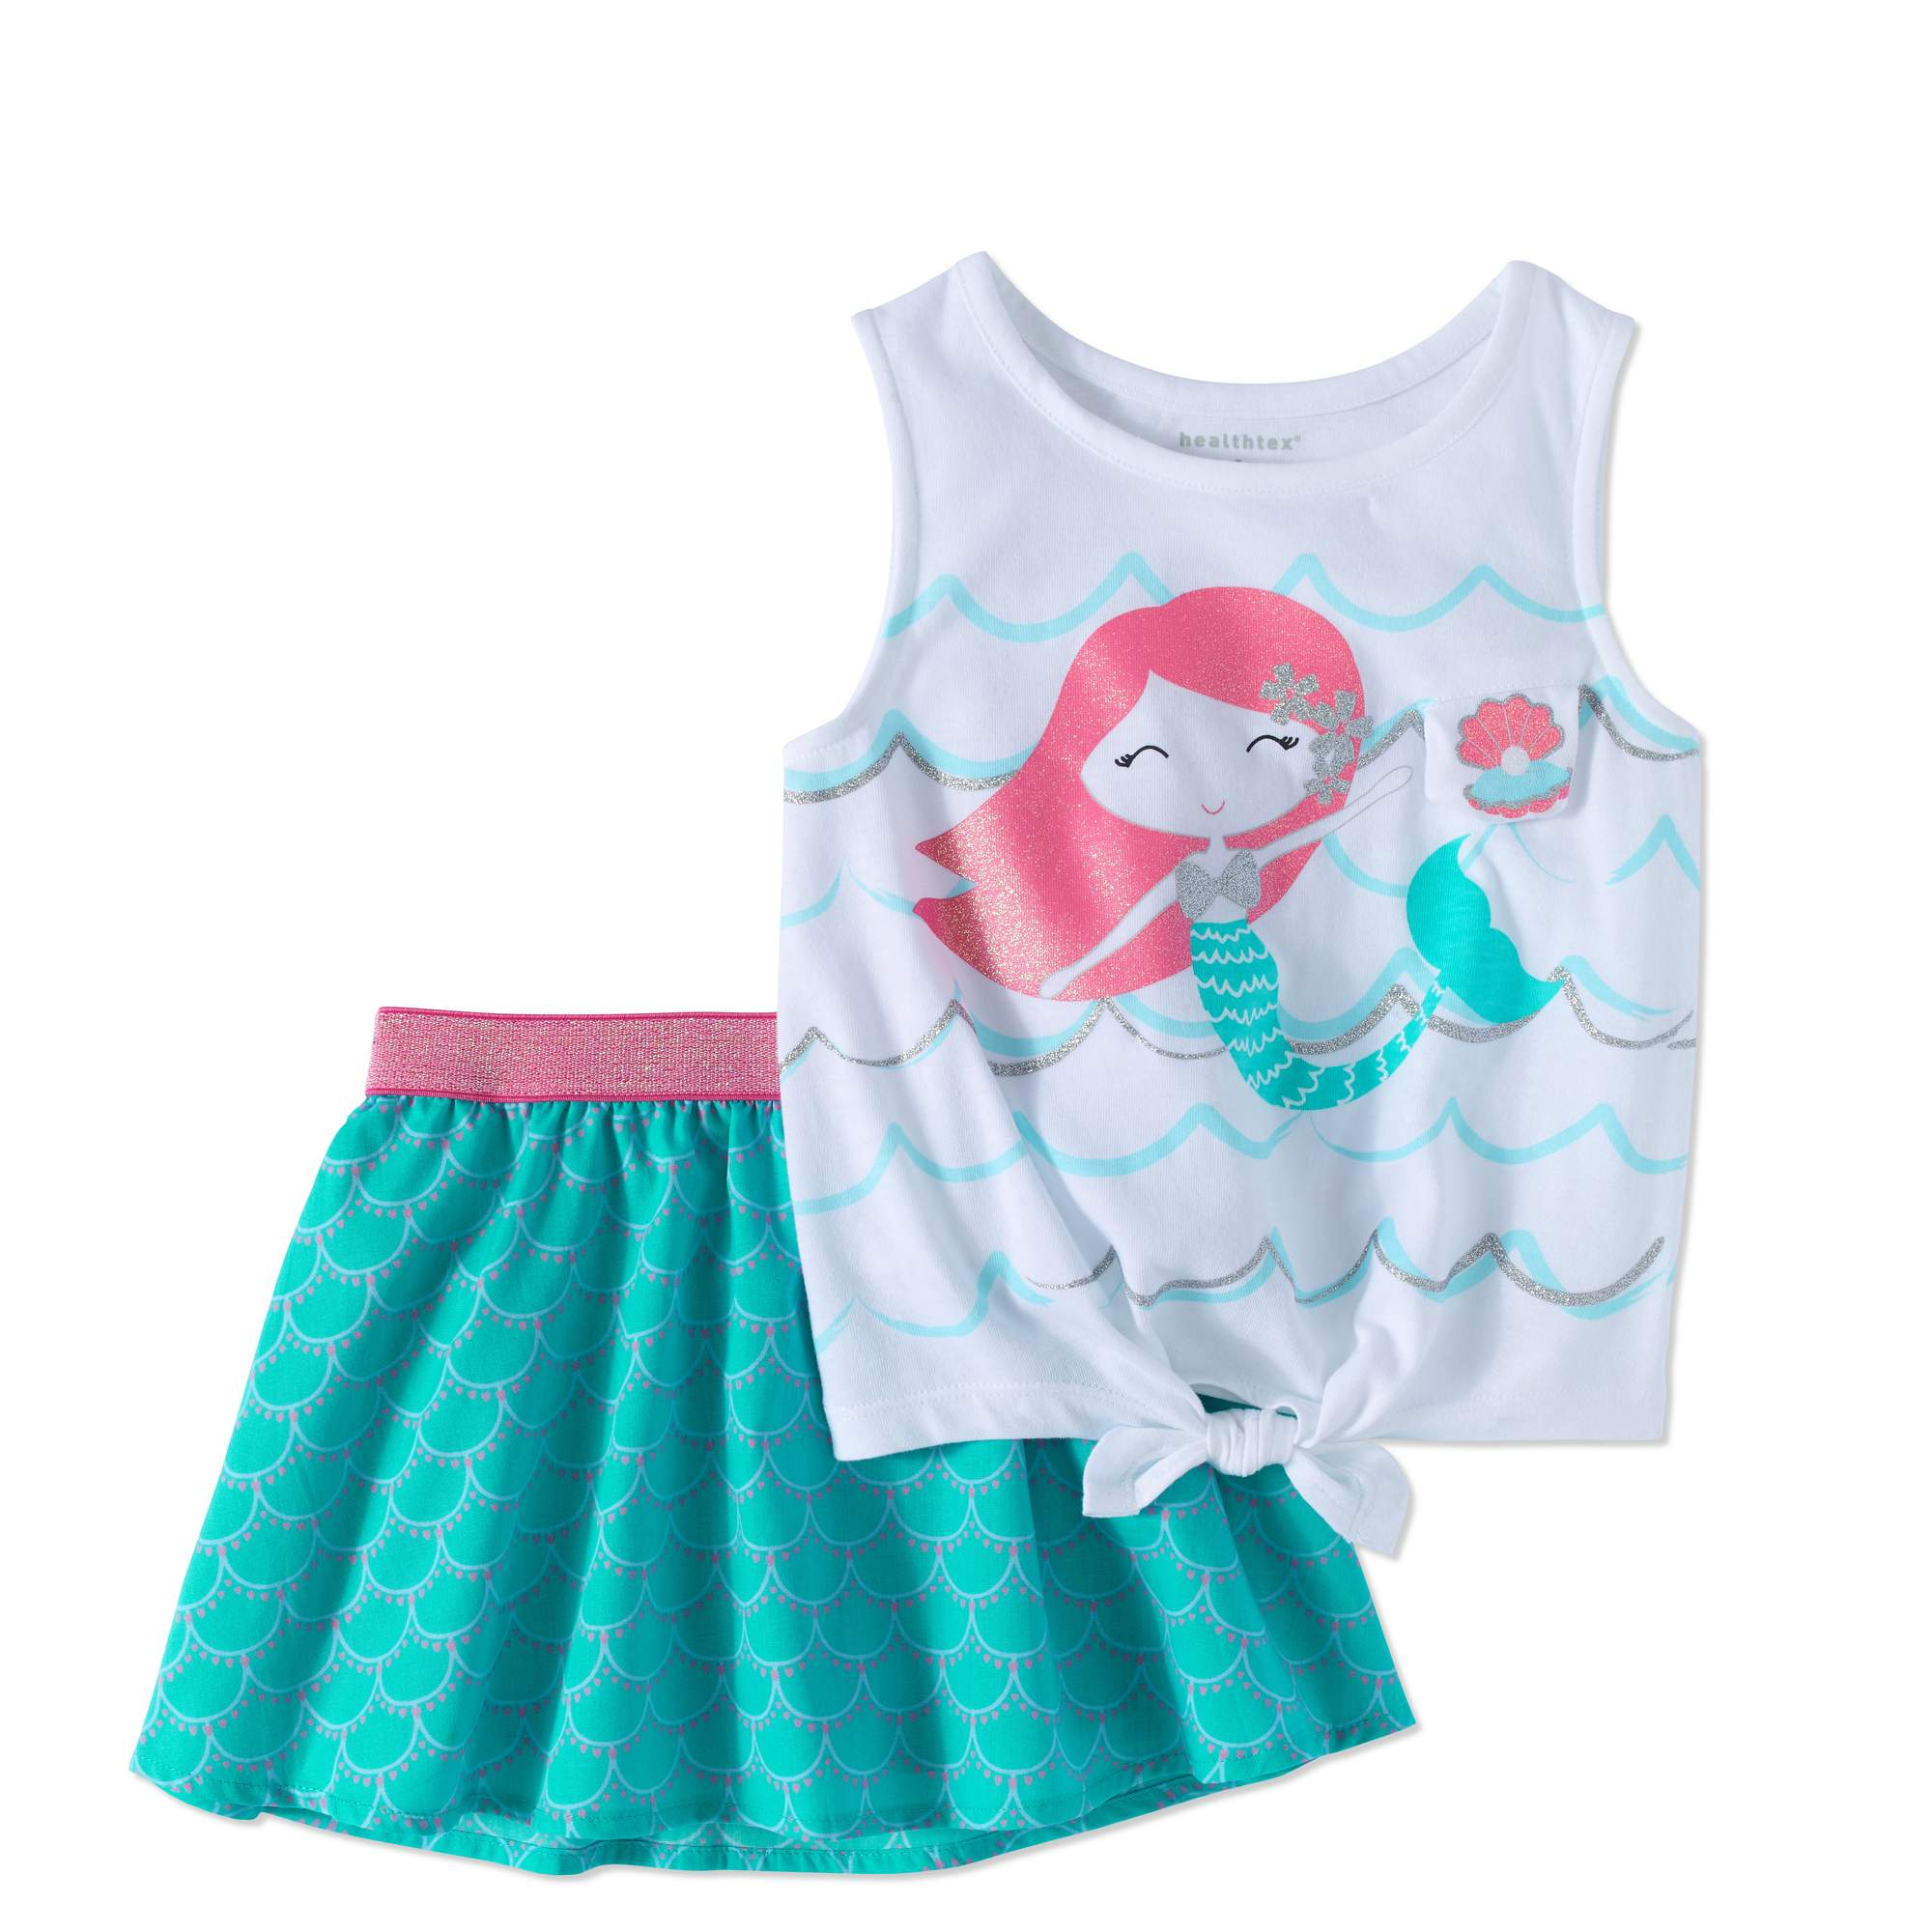 Healthtex Toddler Girl Tie-Front Tank Top & Skirt, 2pc Outfit Set